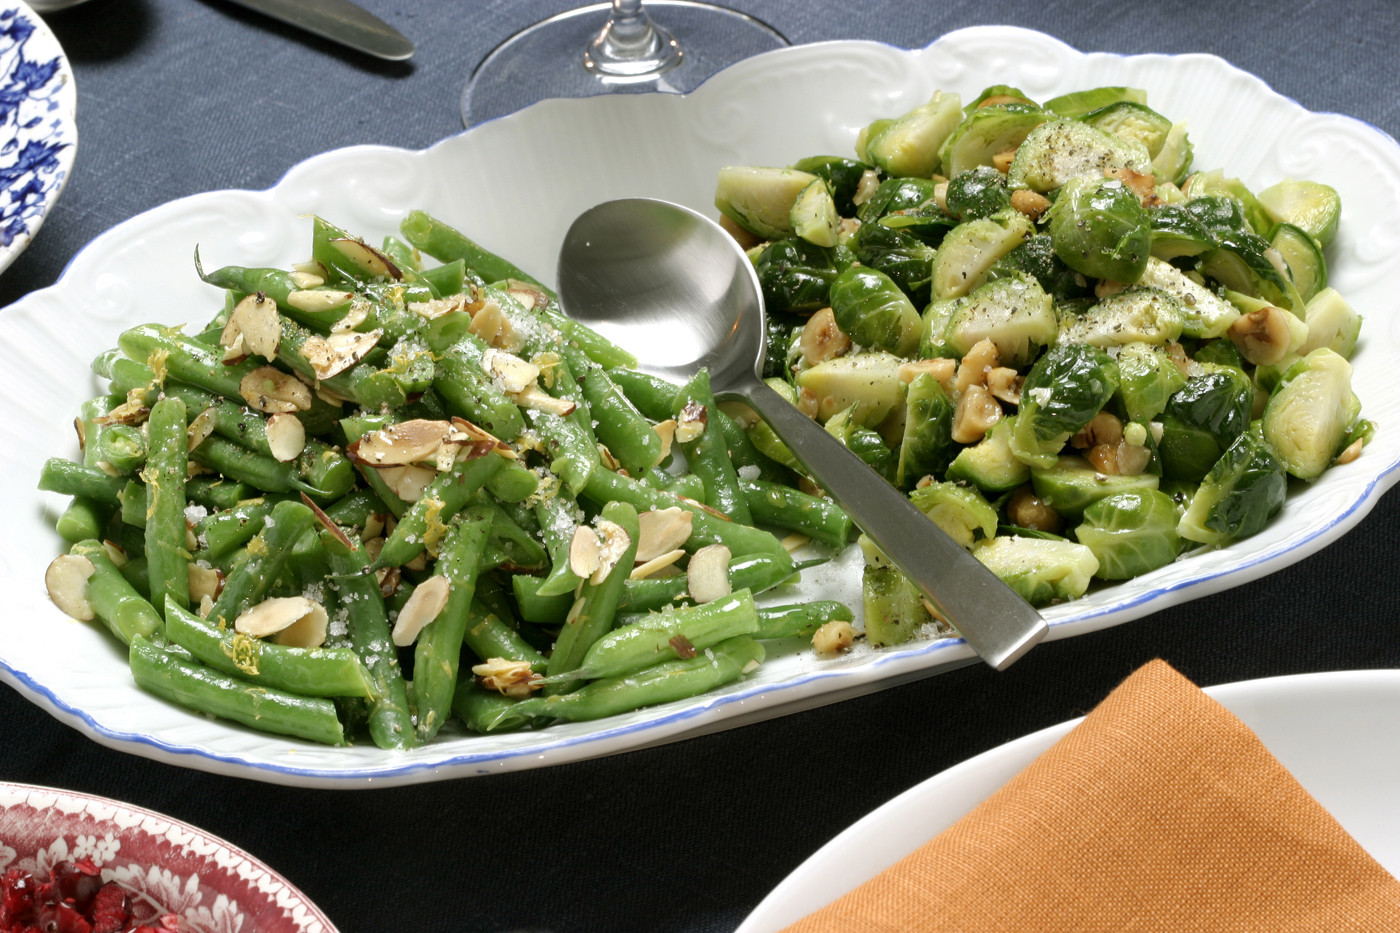 Photos: 97 great Thanksgiving recipes - Meyer lemon green beans with almonds